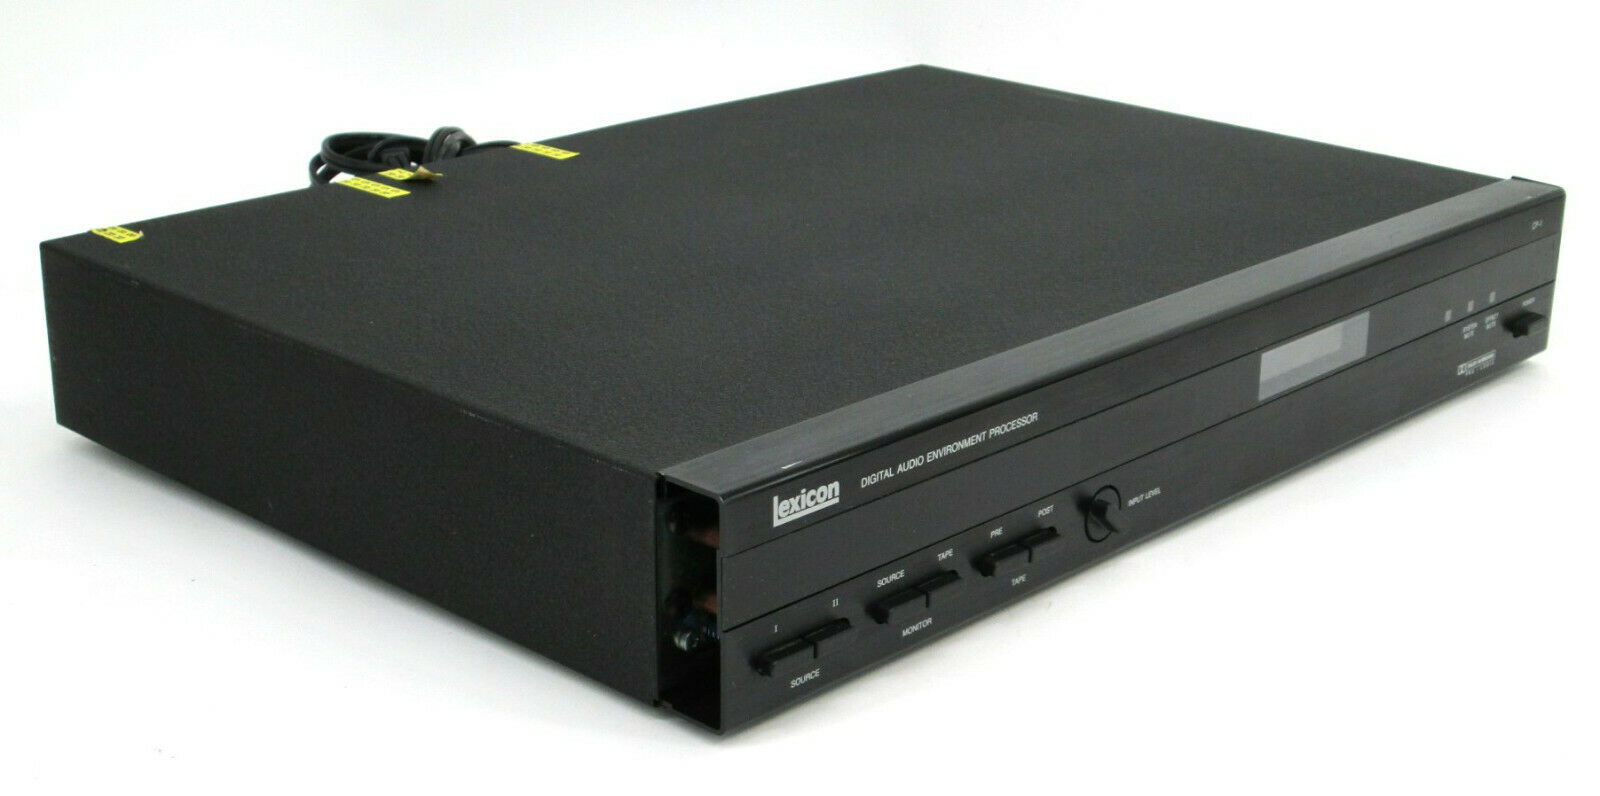 Lexicon CP-1 Digital Audio Environment Processor